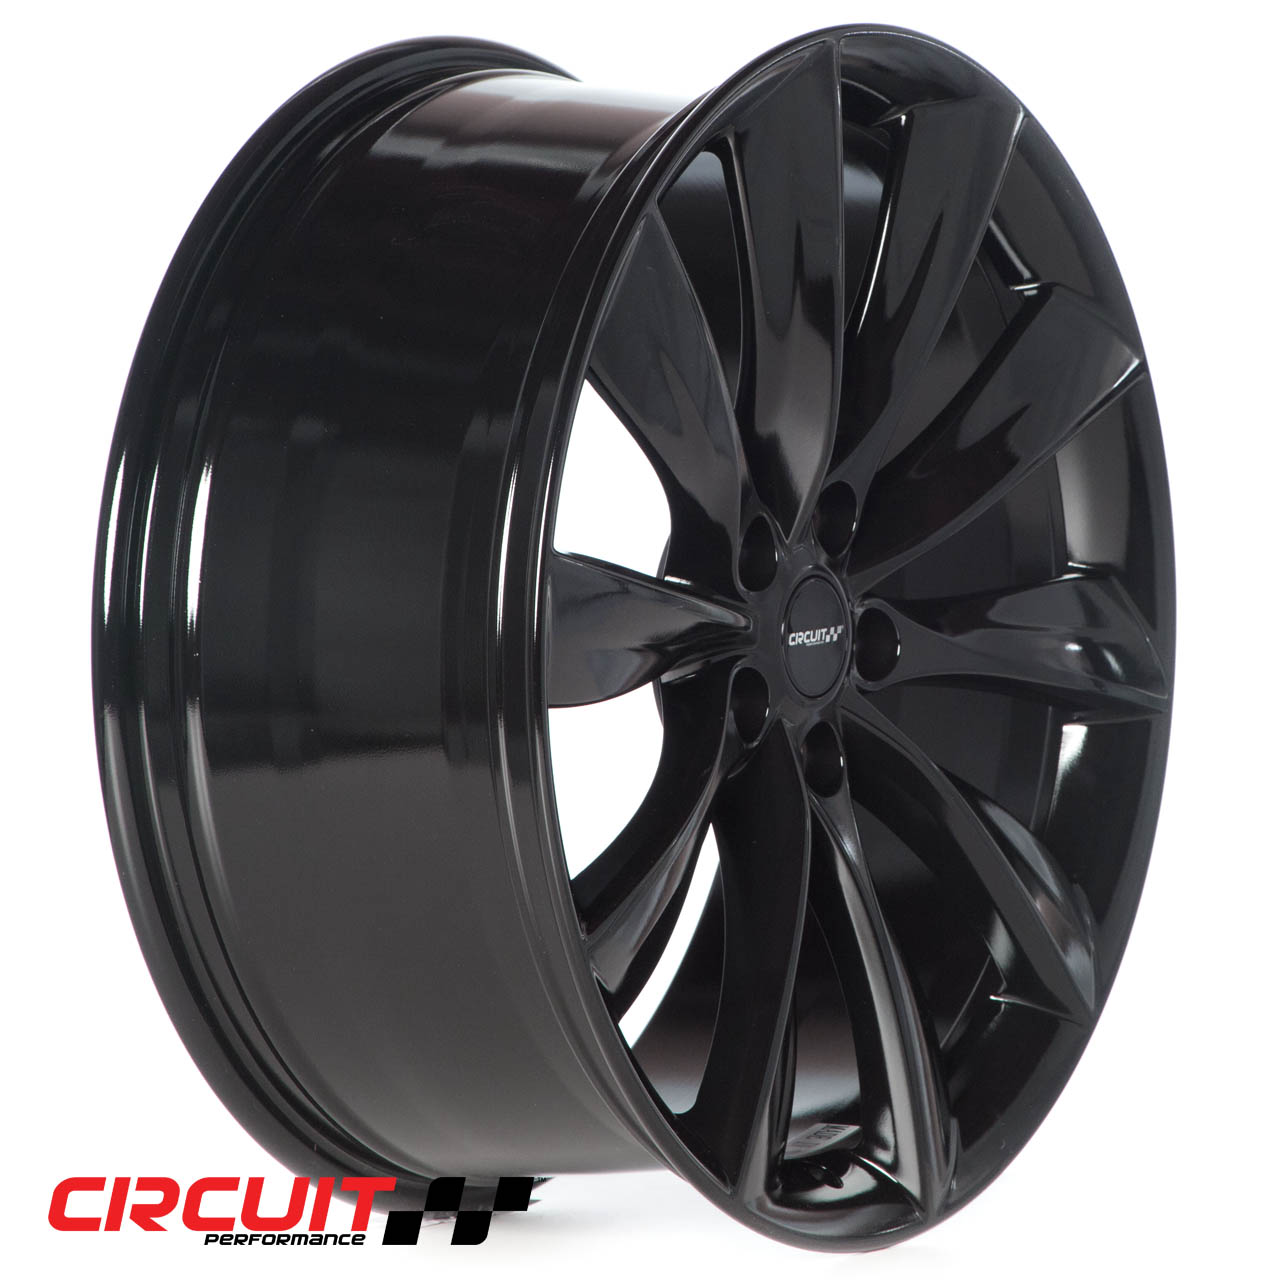 CP12 21x8.5 Gloss Black 5x120 et40 Wheel - Circuit Performance